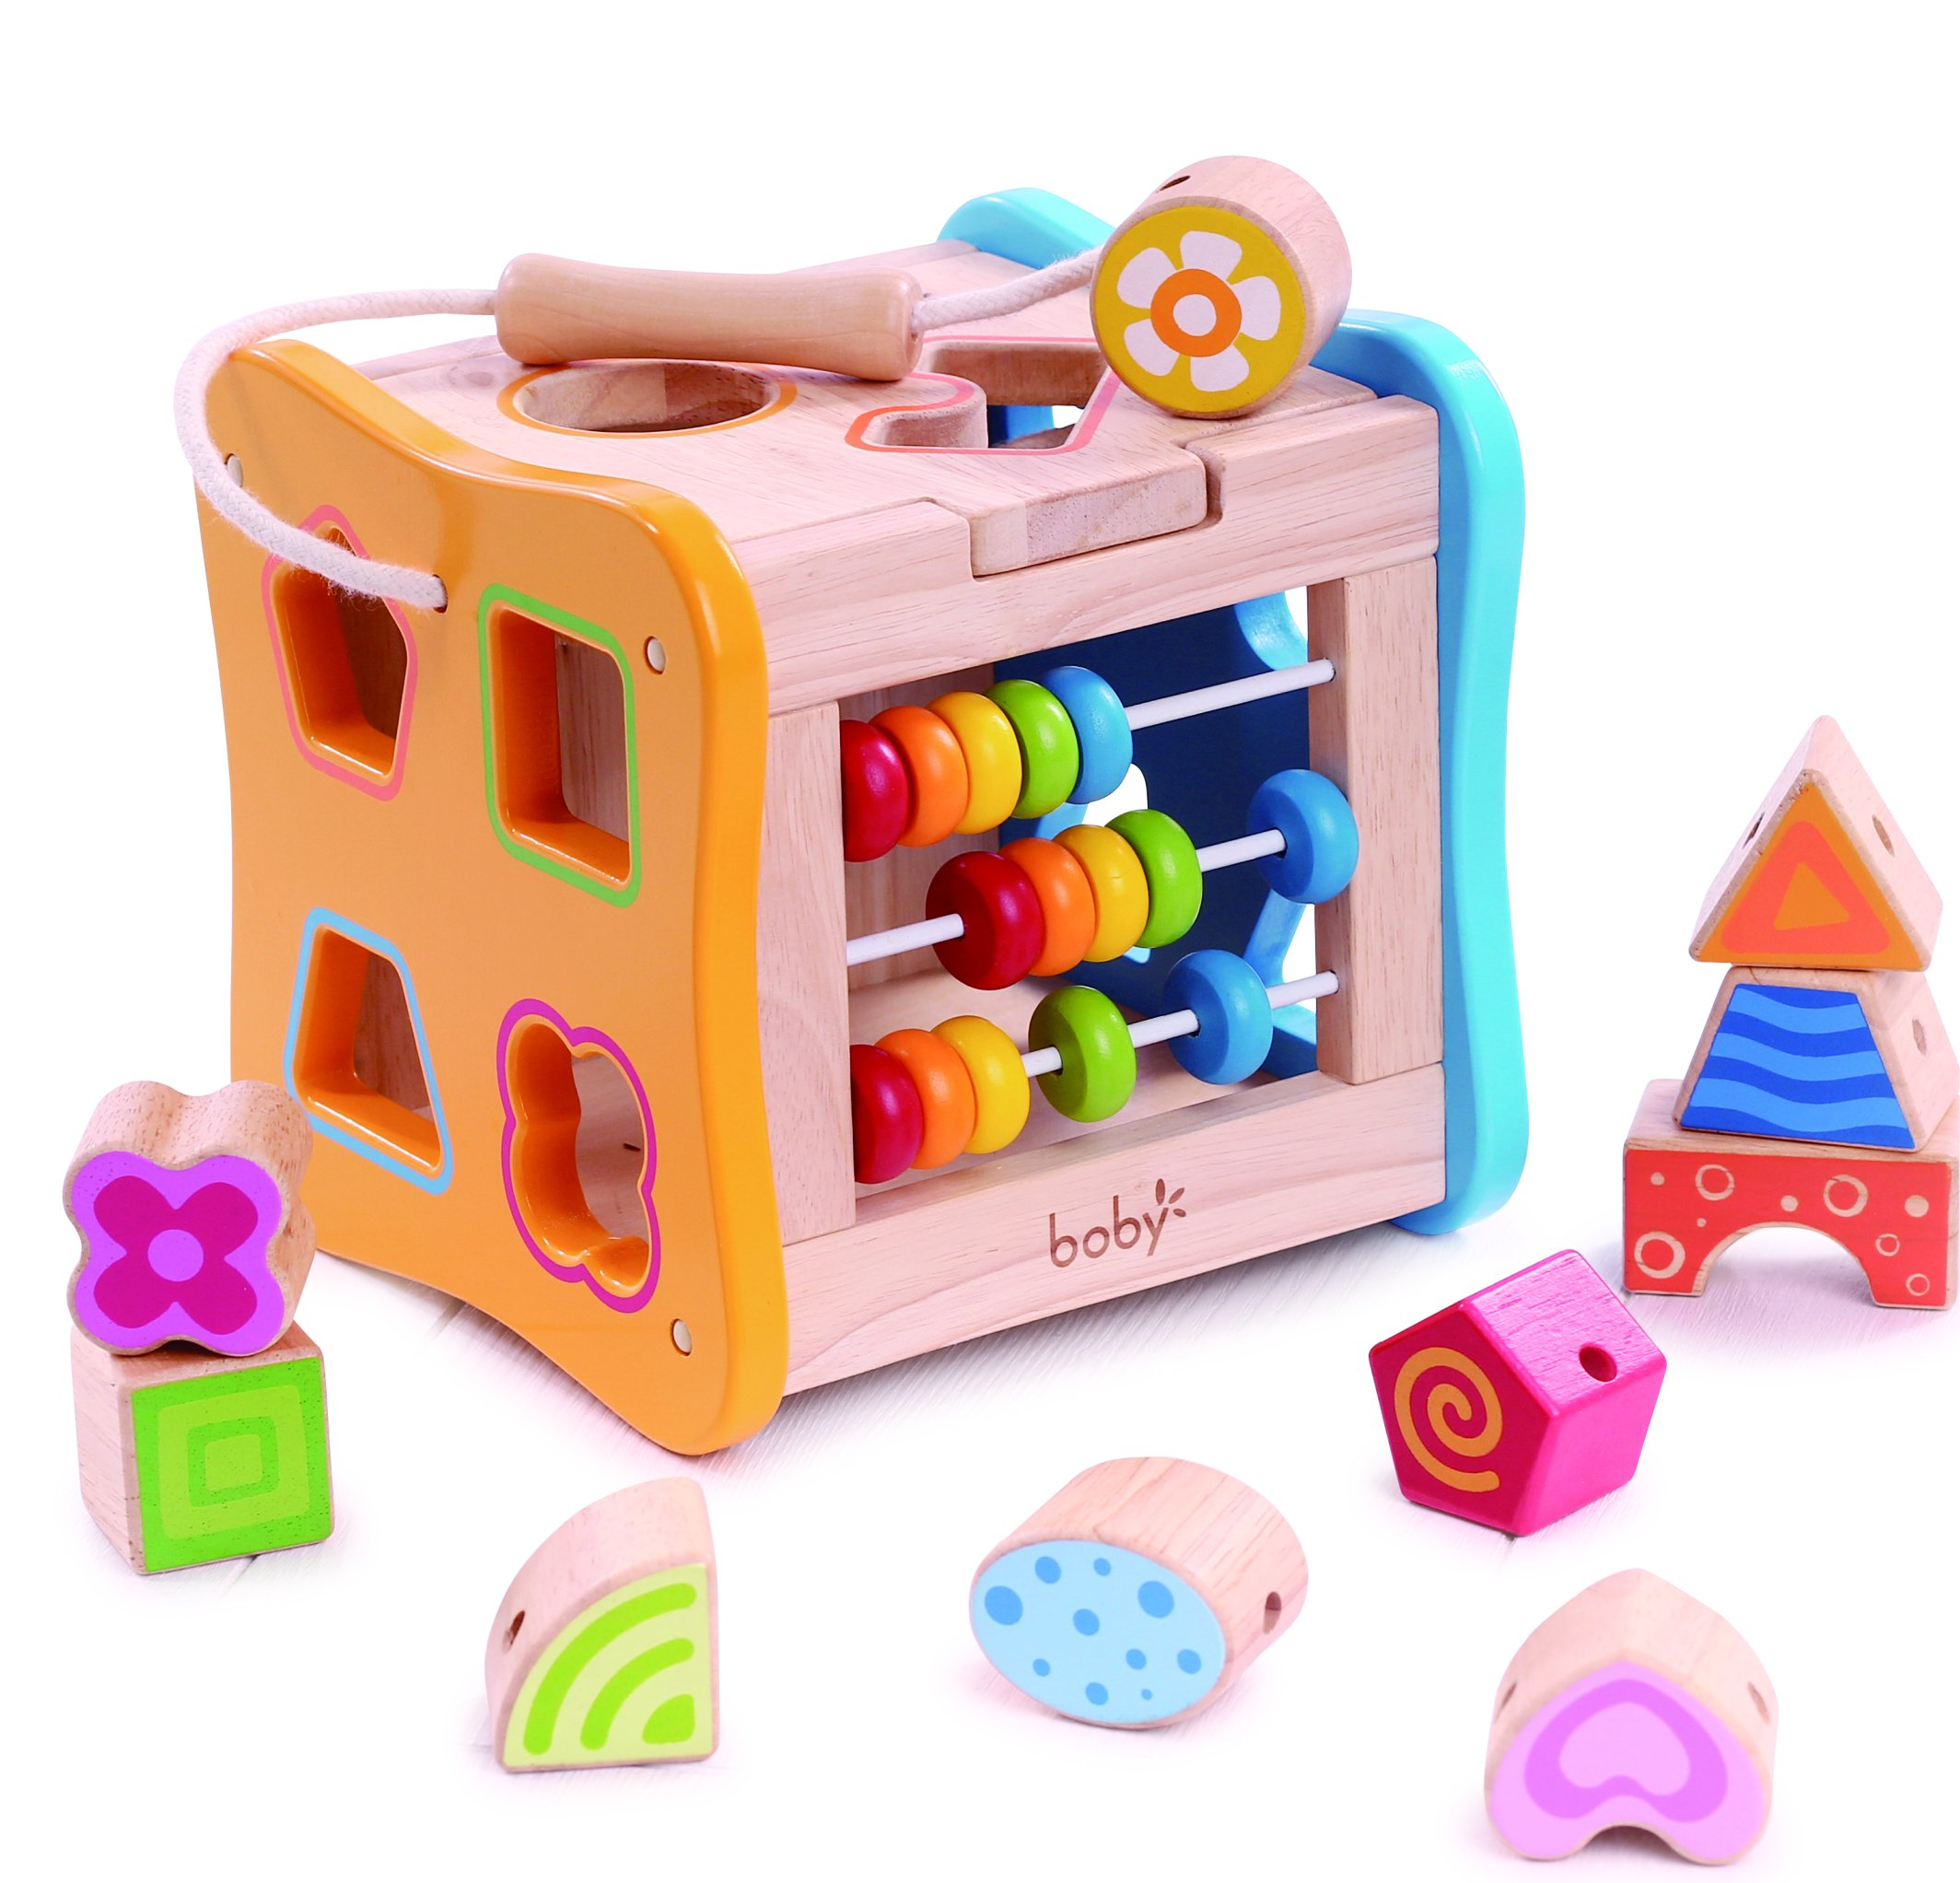 Developmental Toys For Toddlers : Galleon wooden shape sorter lacing beads for toddlers